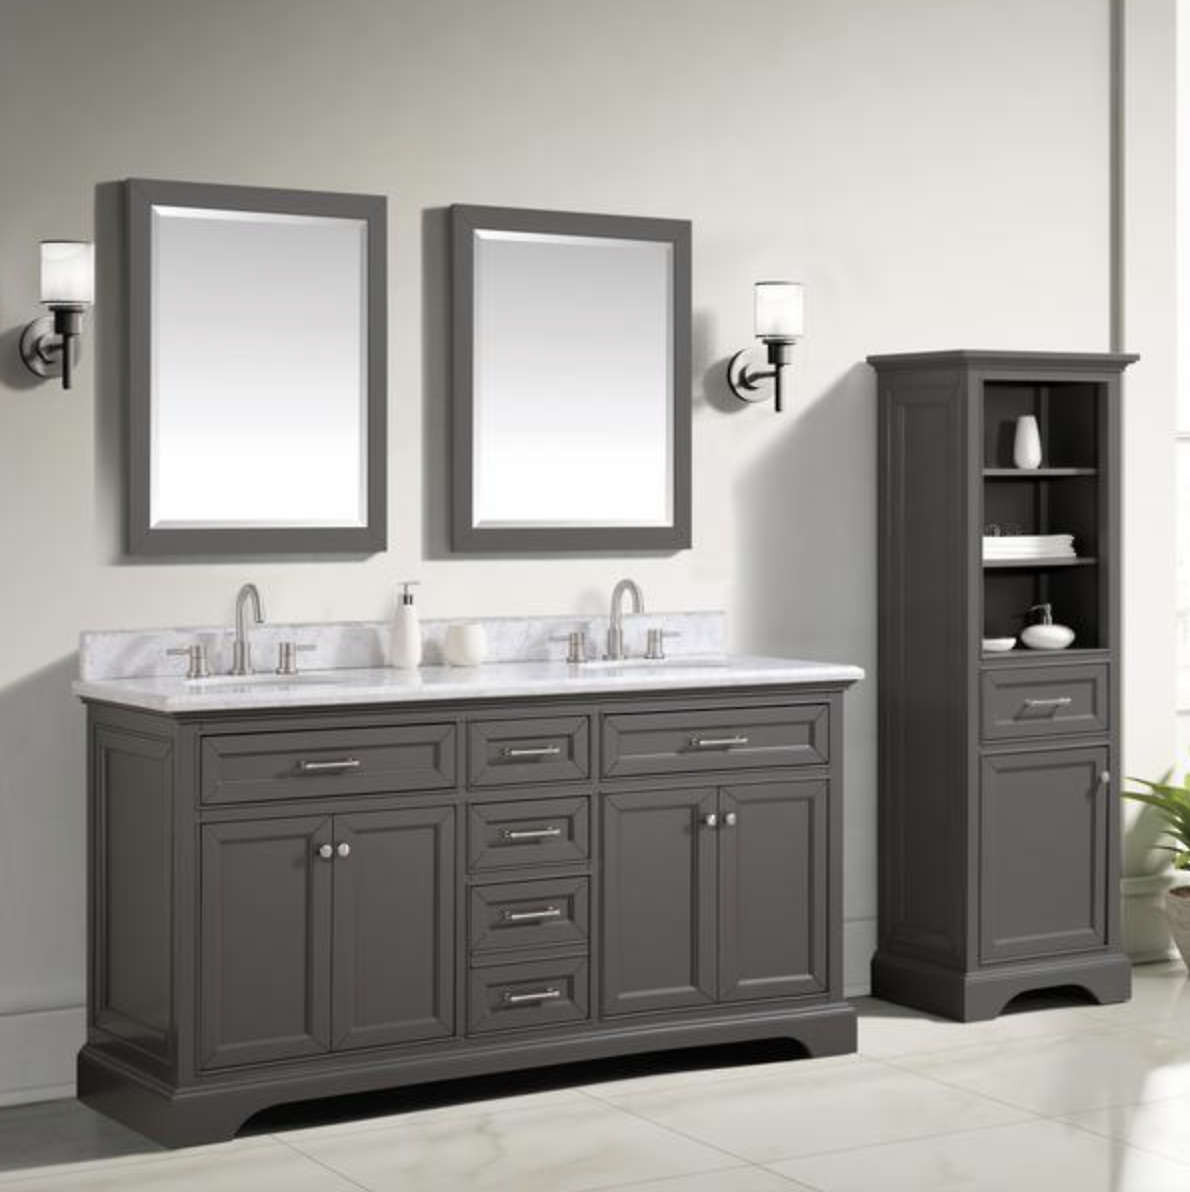 Up to 50% Off Vanities, Mirrors & More